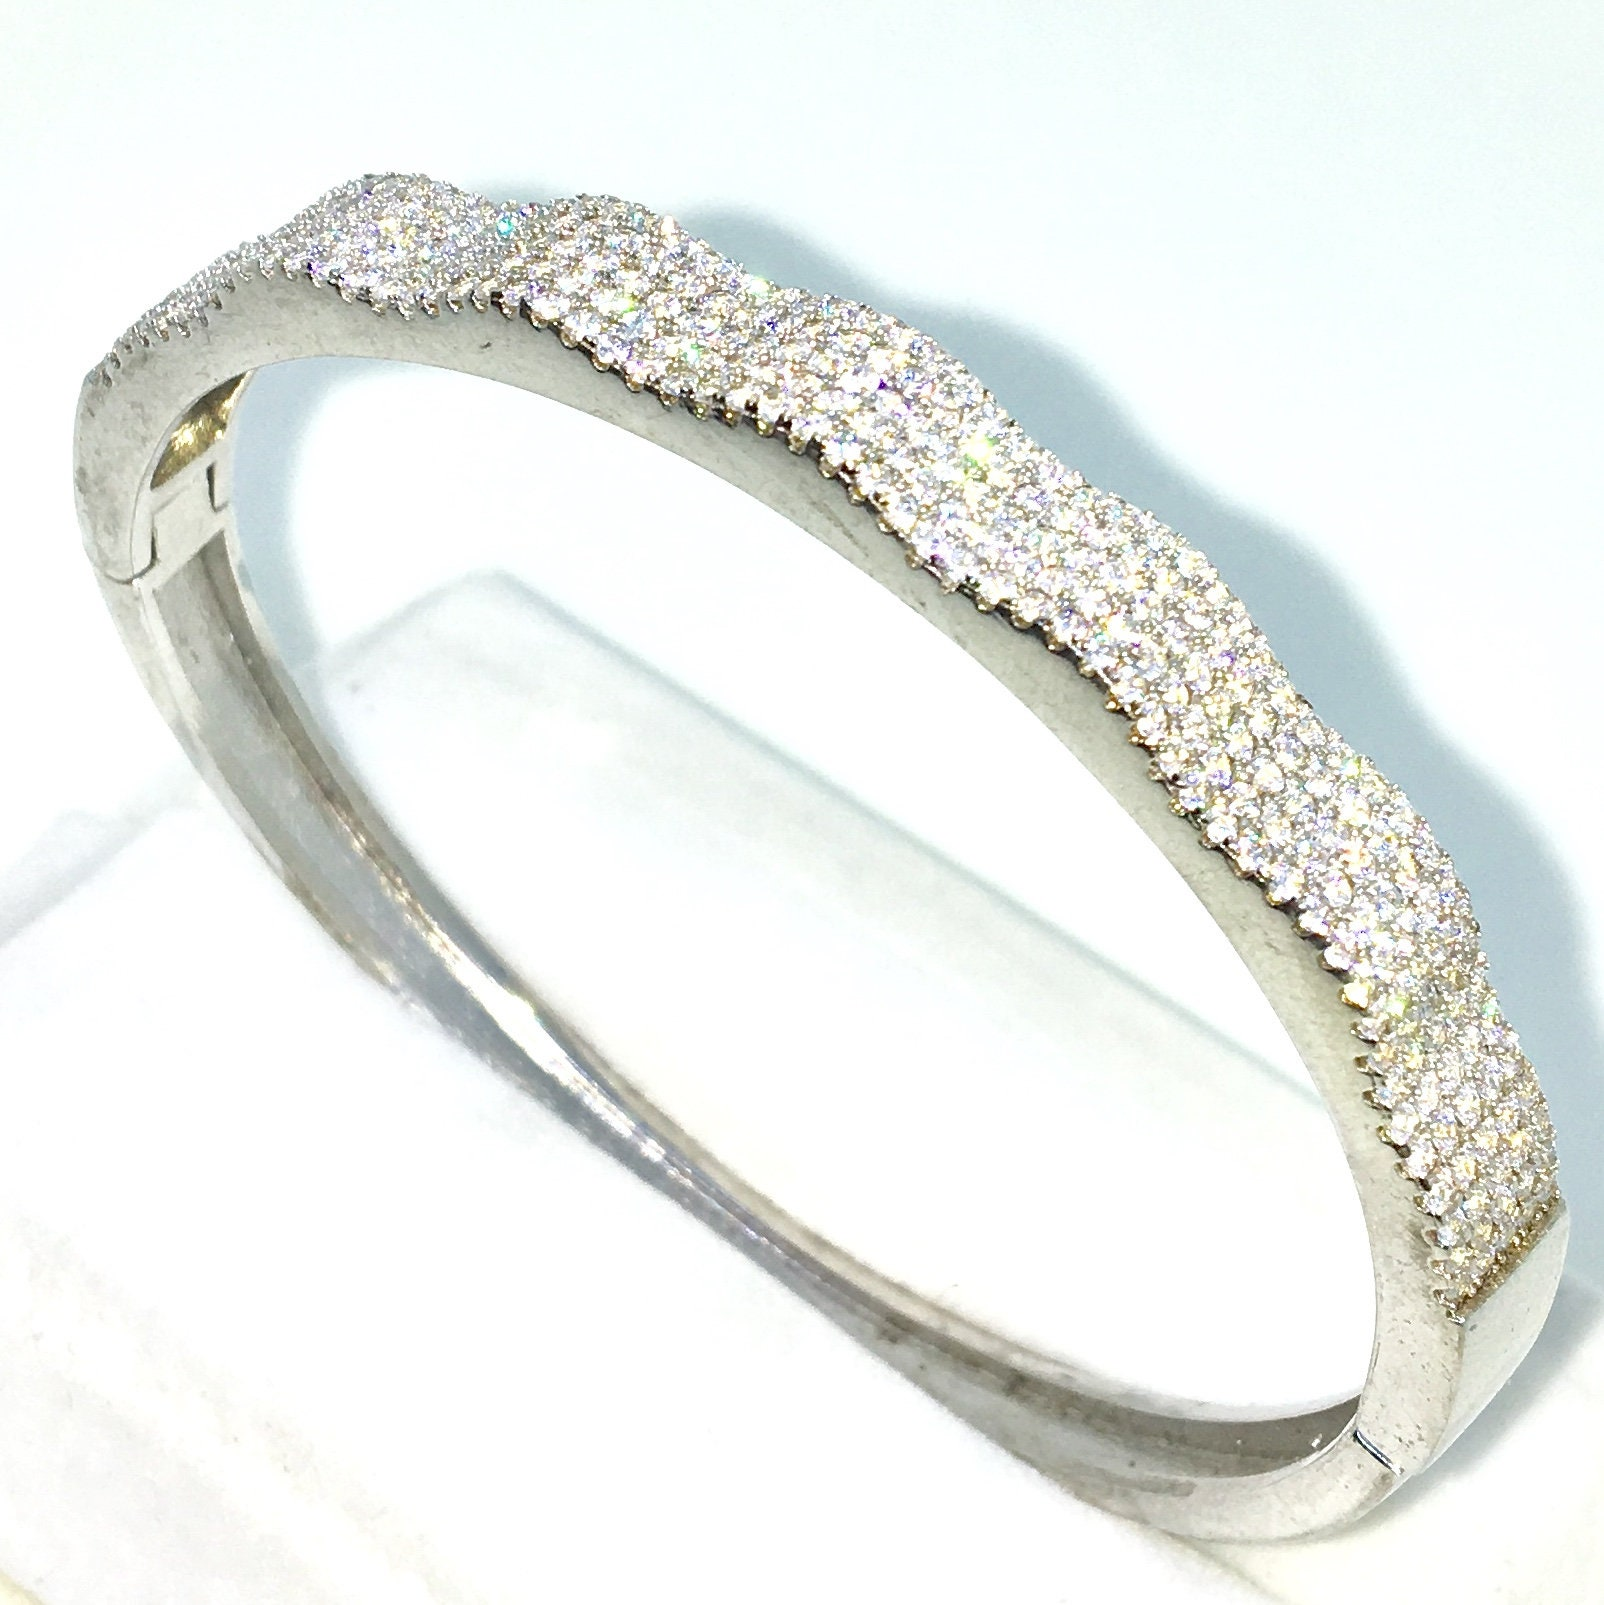 Sterling Silver Woman/'s Shiny Simple Curb Ring Fashion 925 Band 3mm Sizes 3-9